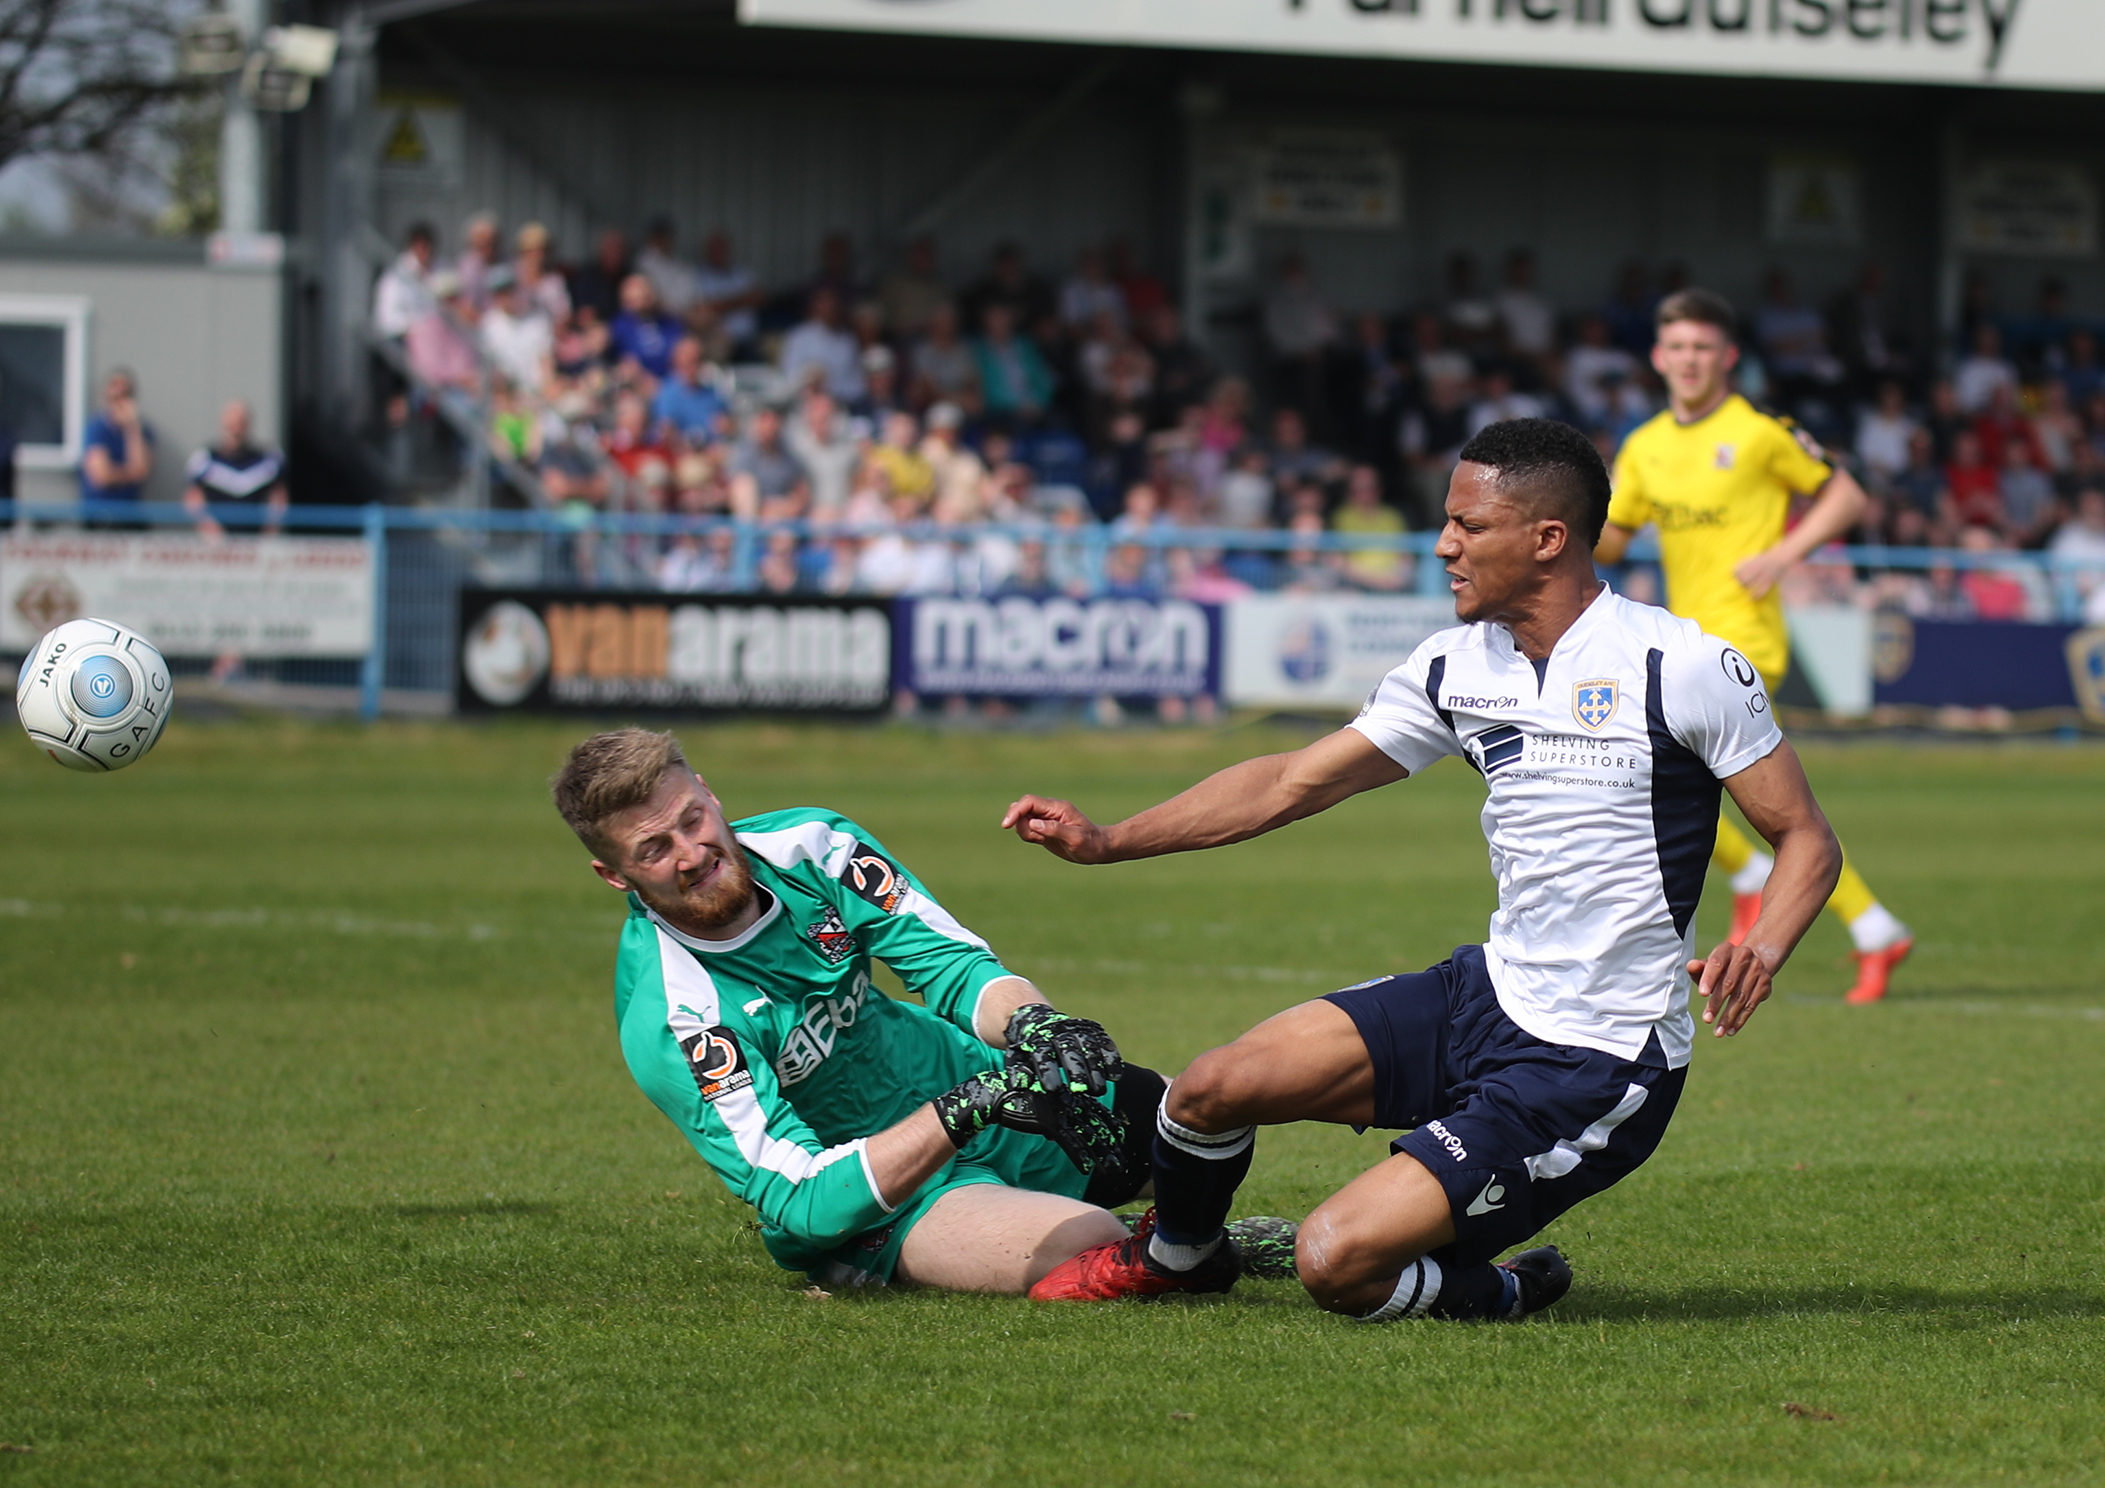 Guiseley's Kaine Felix scores against Darlington in their 1-0 win in the Vanarama National League North on Monday. Picture: Alex Daniel Photography